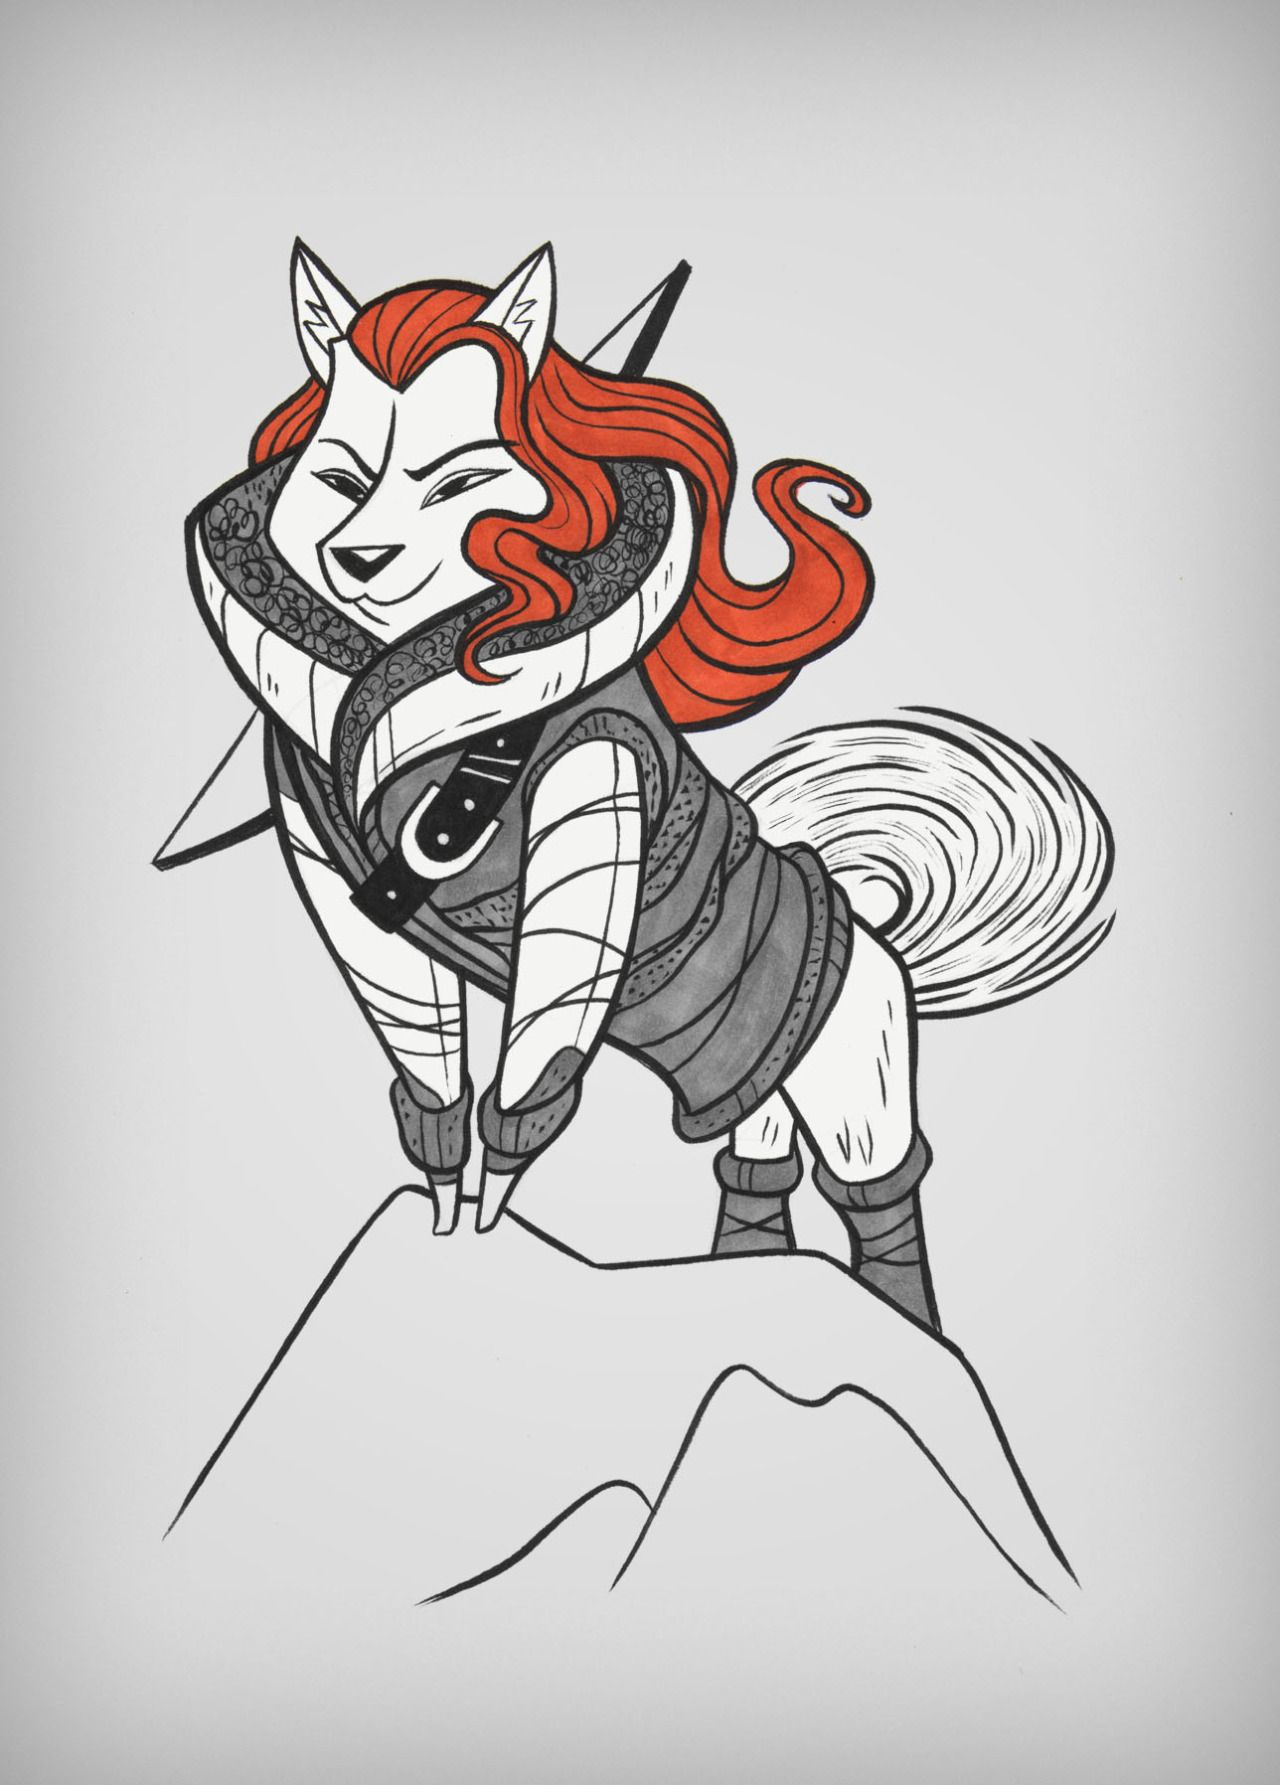 Game of Bones - Ygritte as a Shiba Inu